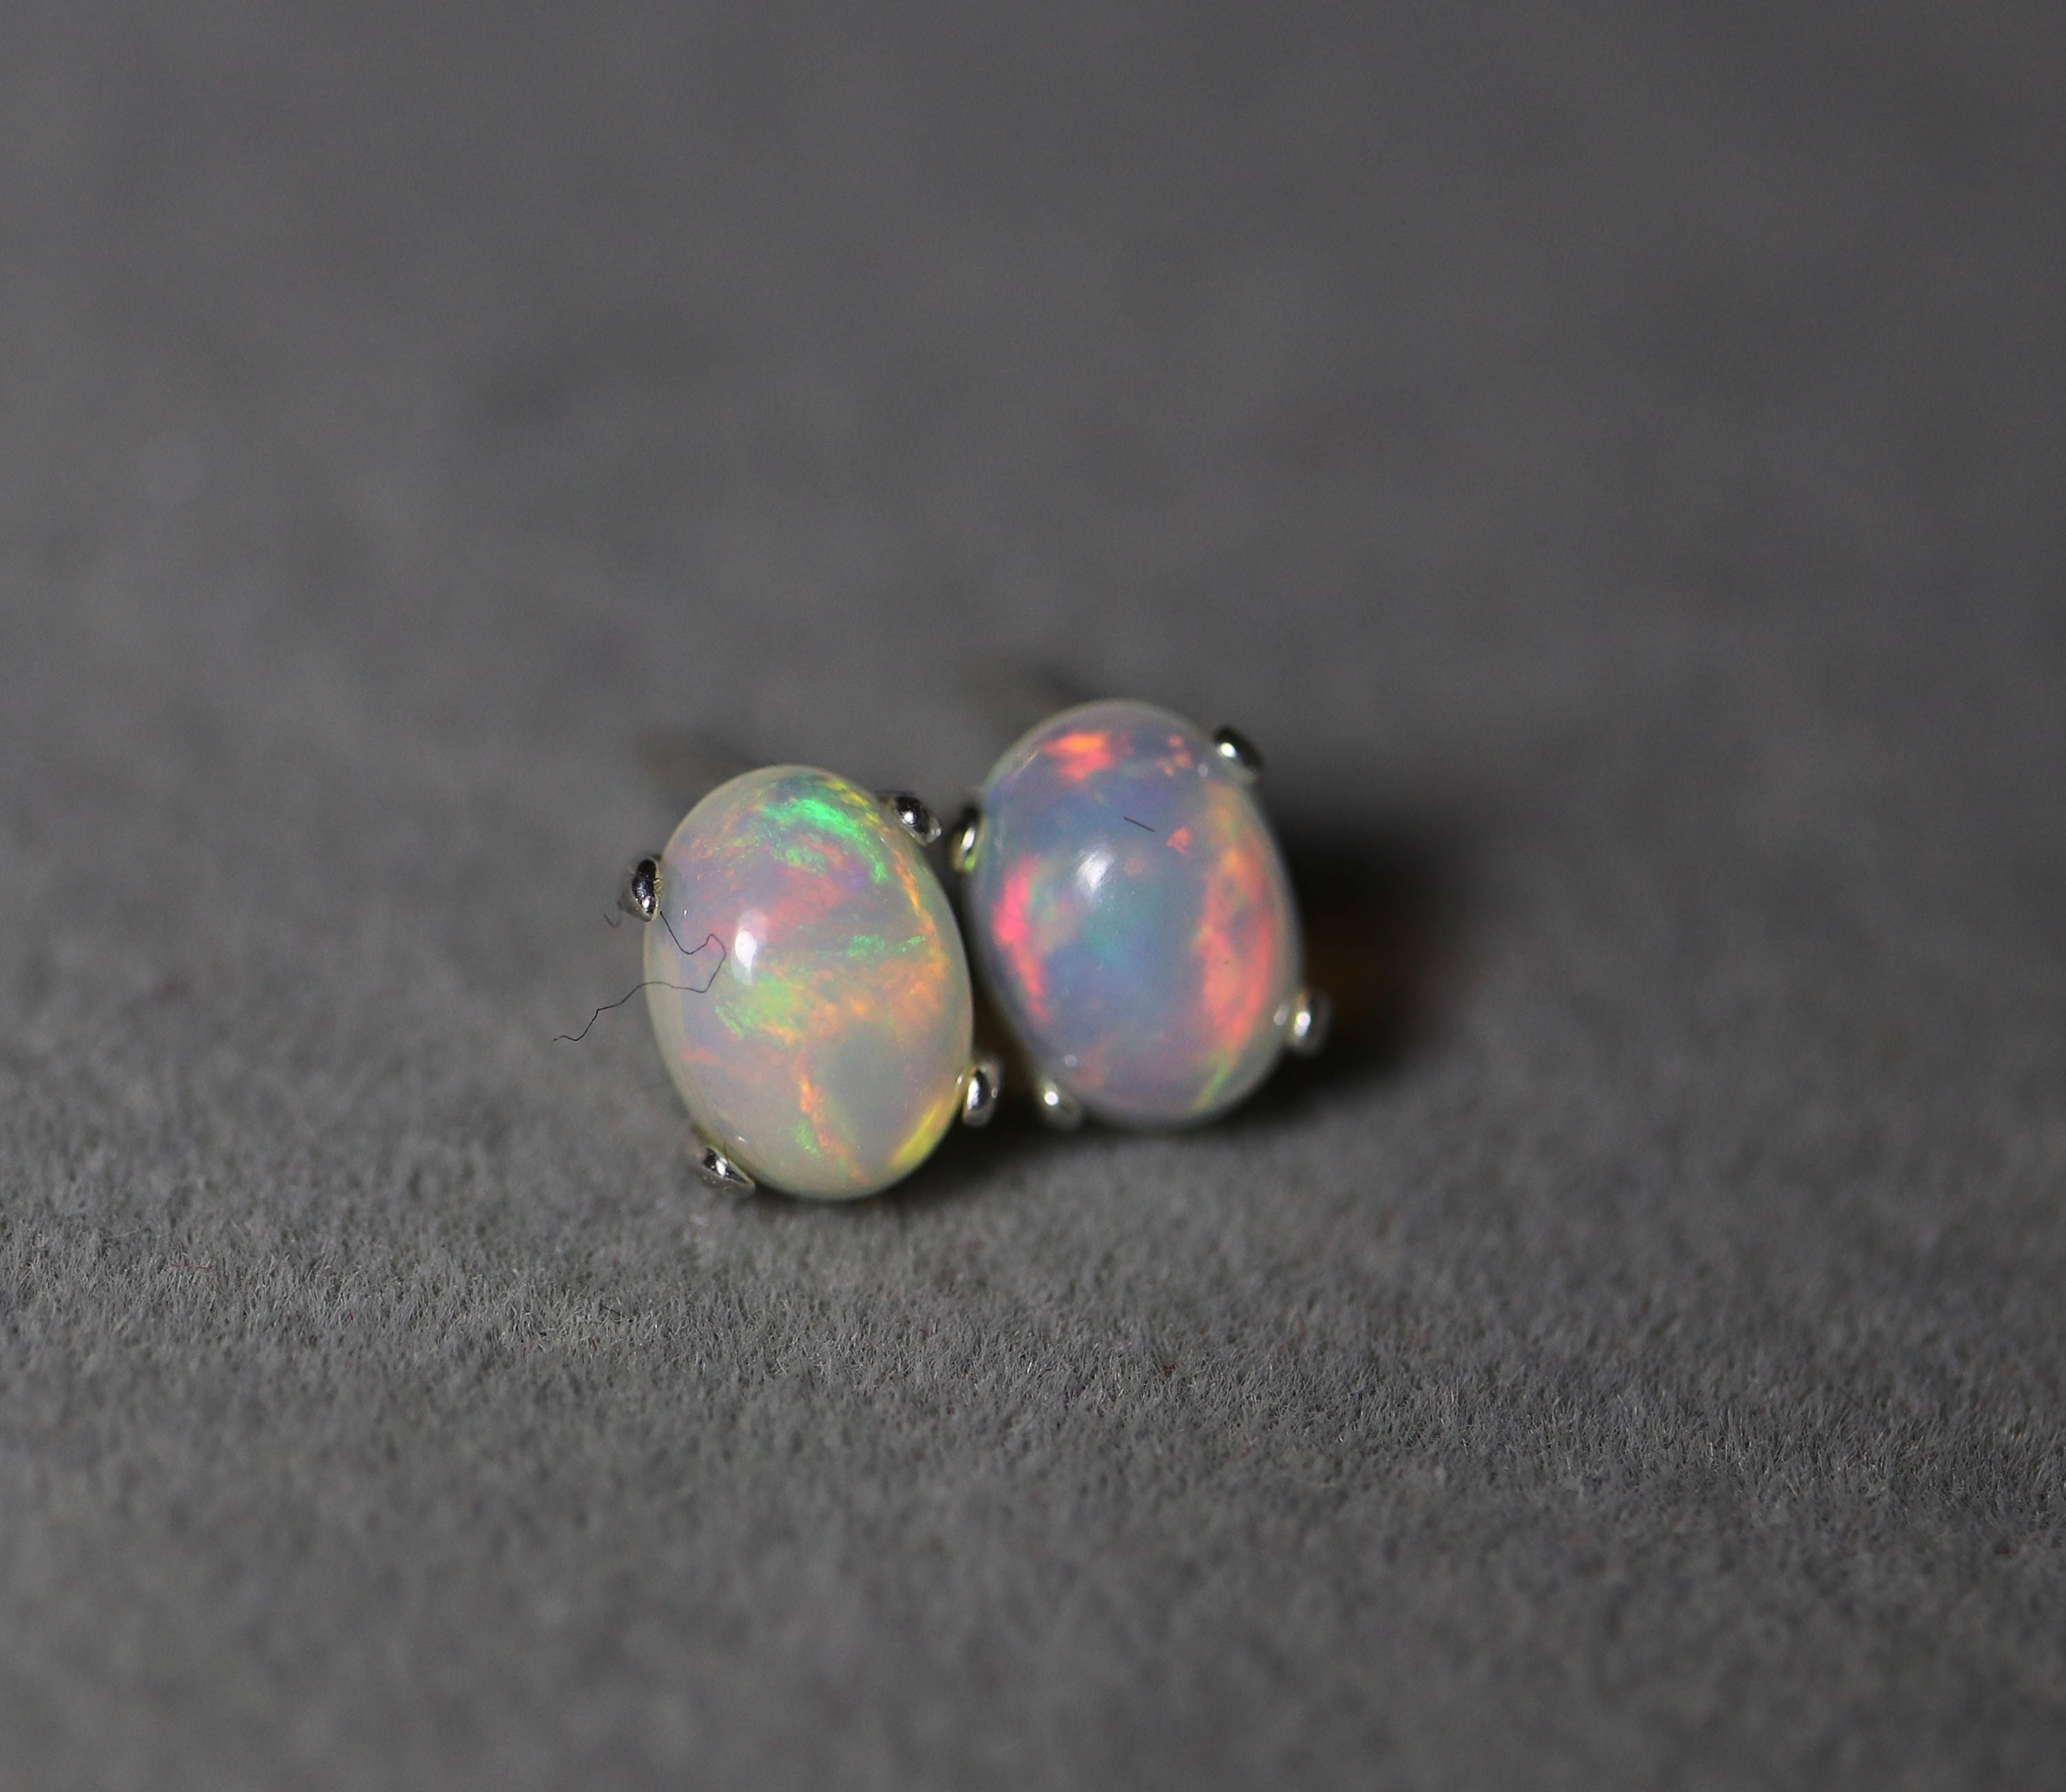 gems oval opal jewellery studs bright real gold colorful flashopal earrings stud